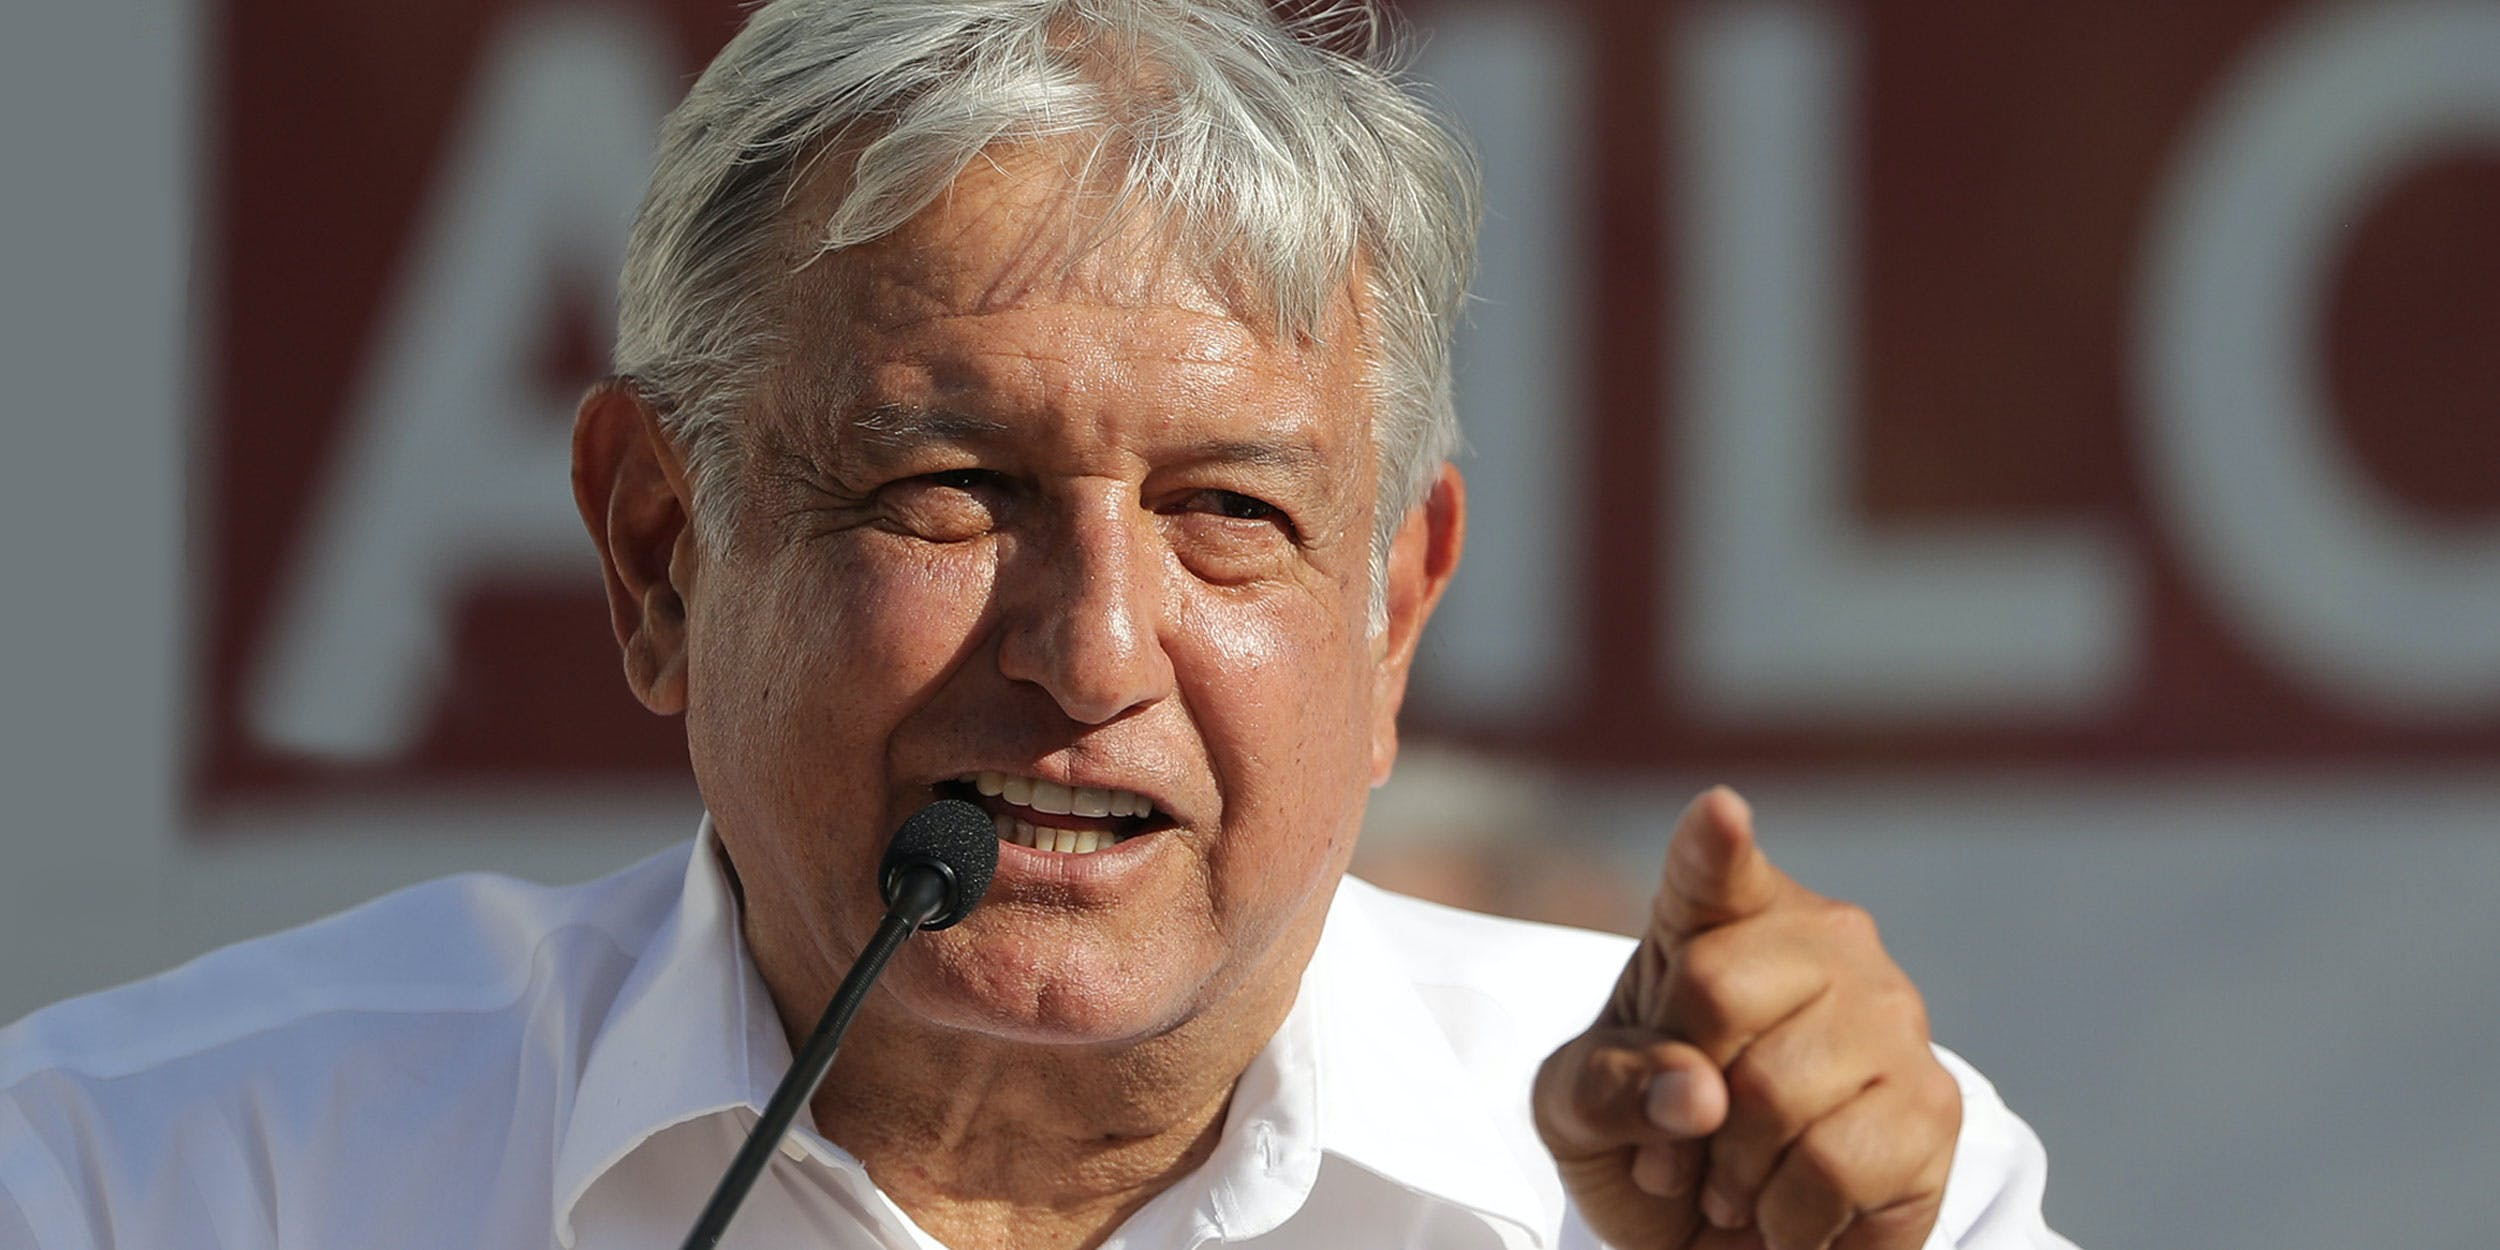 Will AMLO legalize cannabis in Mexico? - Herb